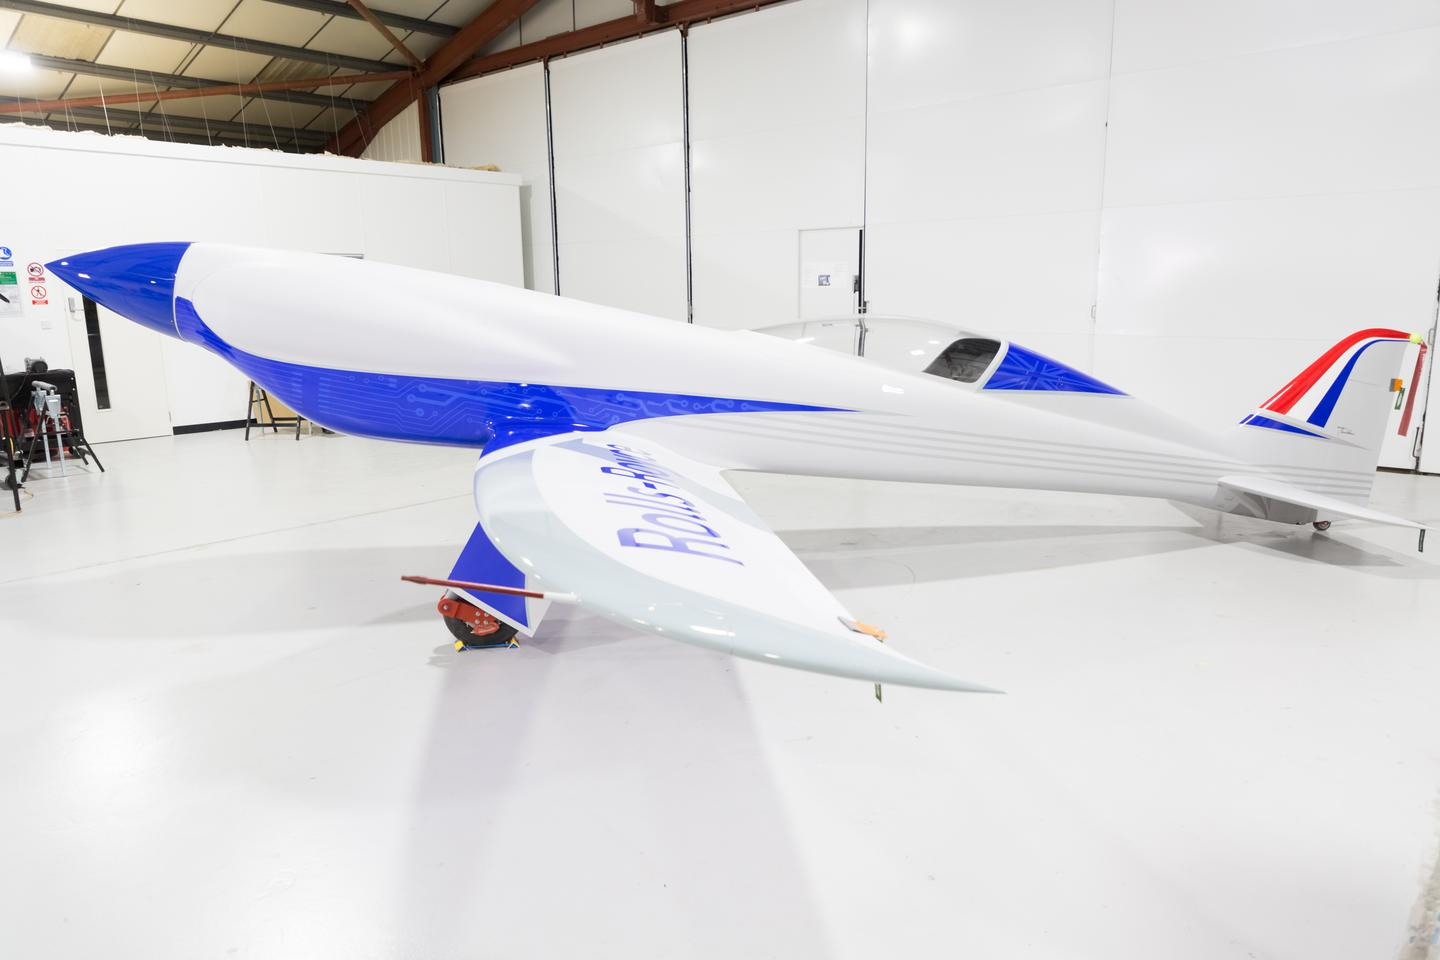 The ACCEL project plane